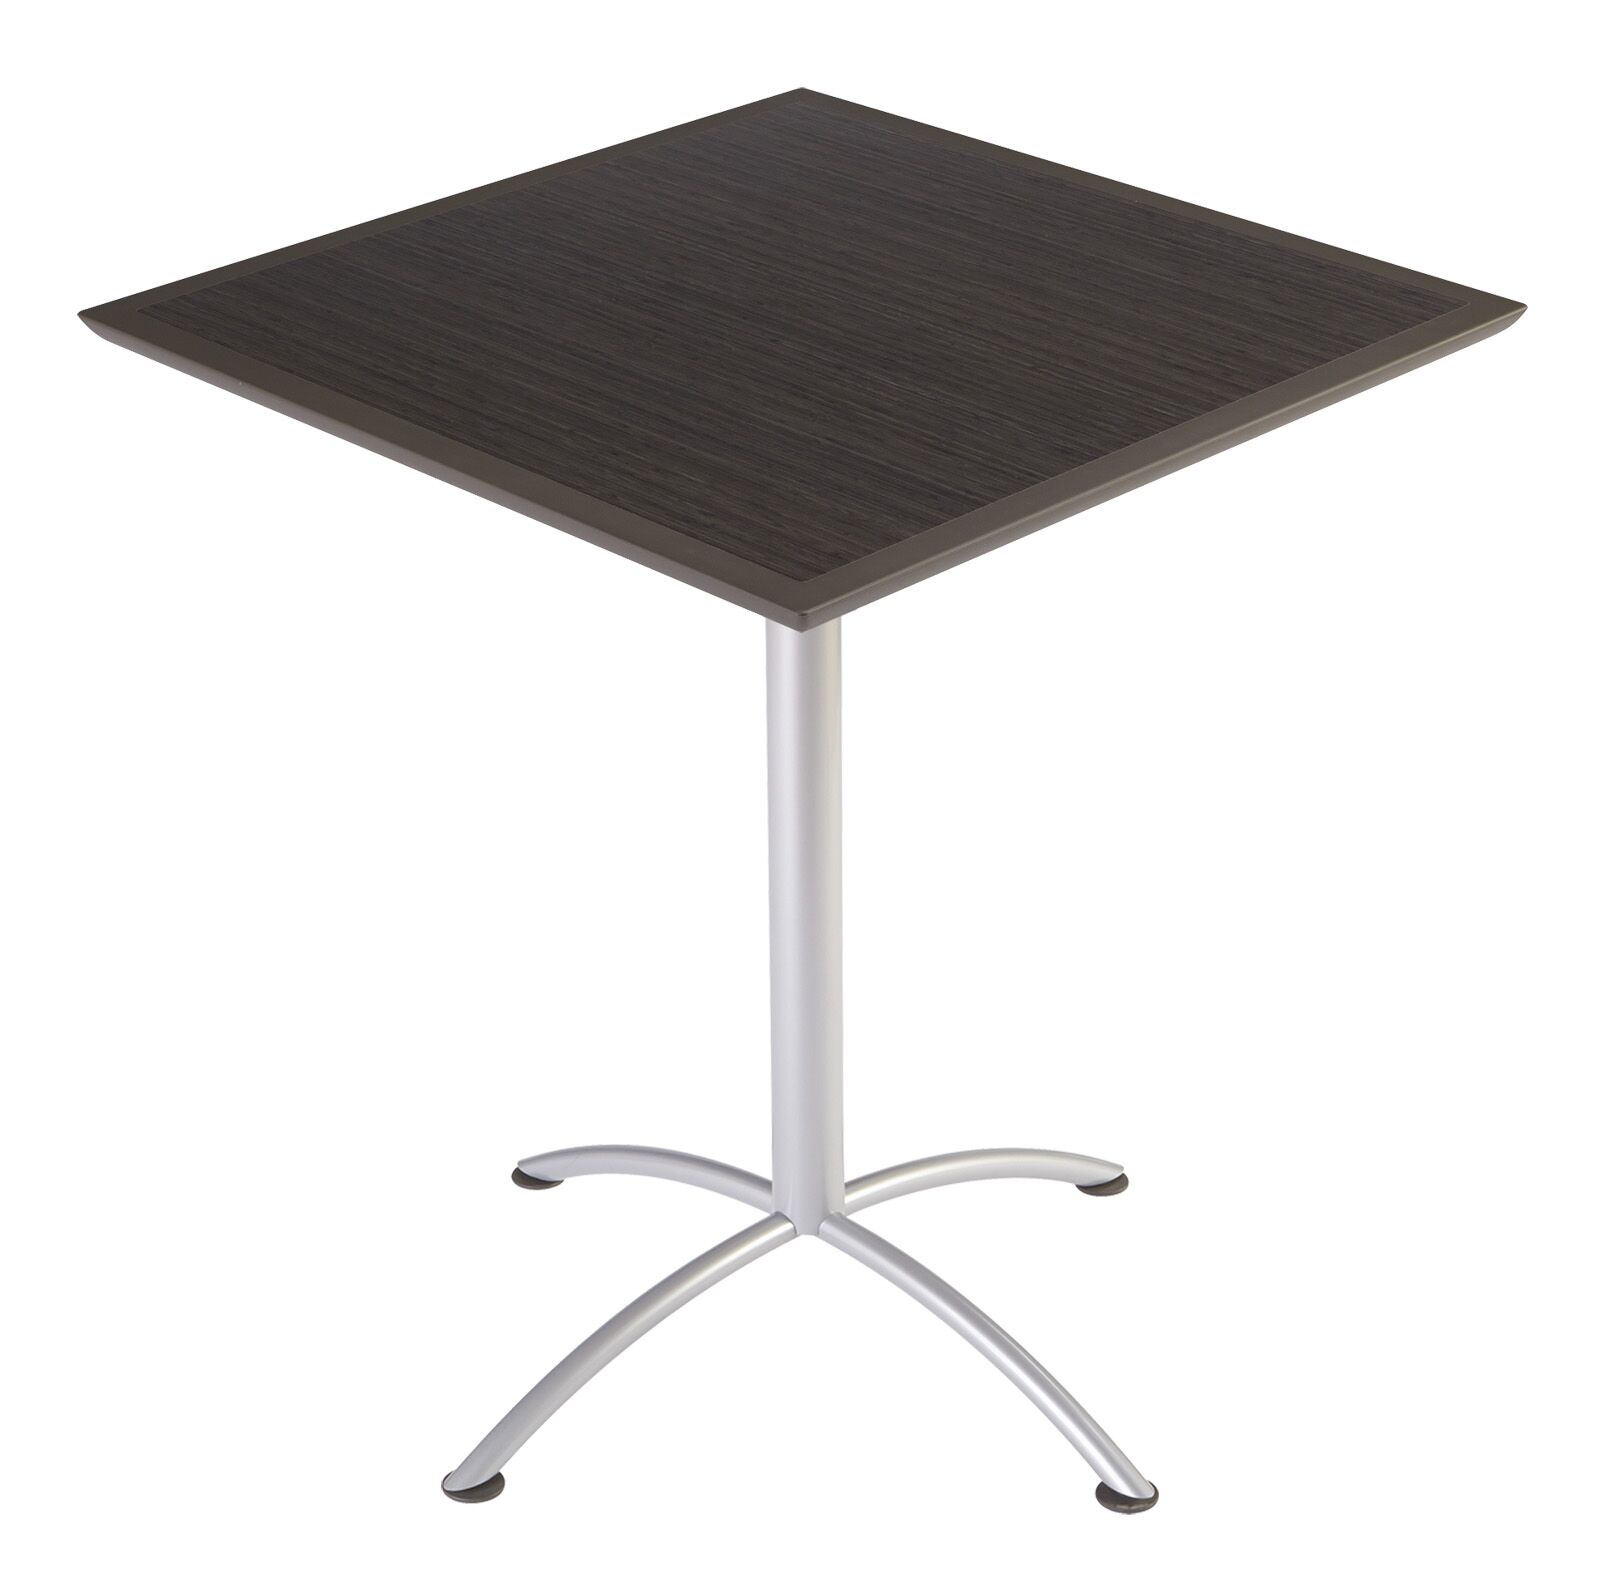 iLand Square Conference Table Top Finish: Gray / Walnut, Size: 42